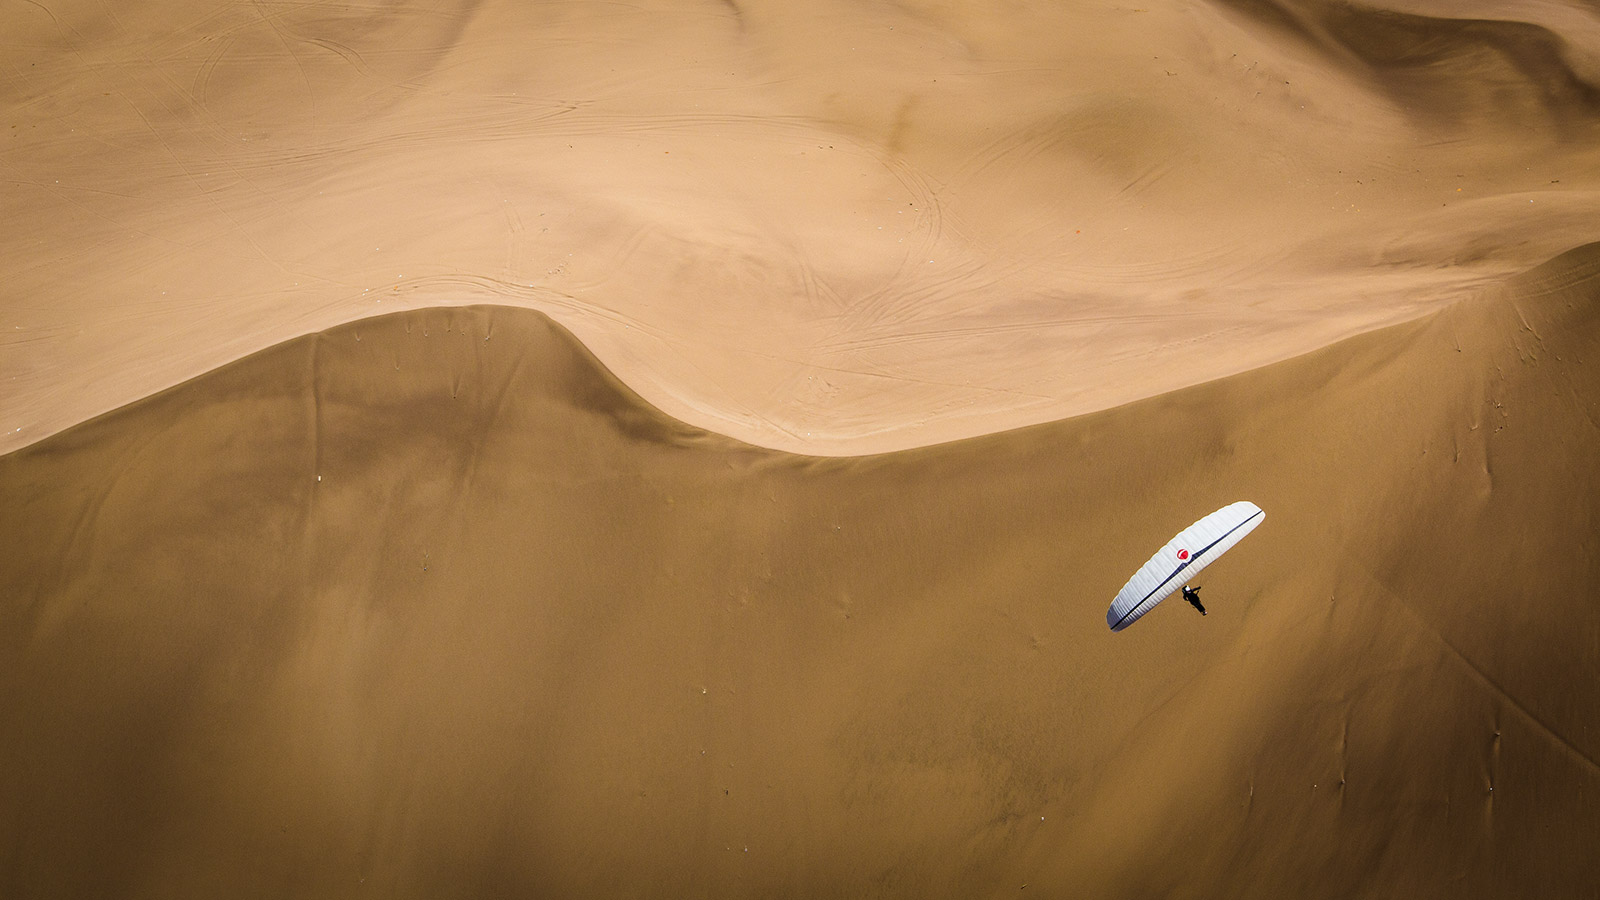 Looking for a toplanding spot on the magnificent Dragon Dune outside of Iquque.